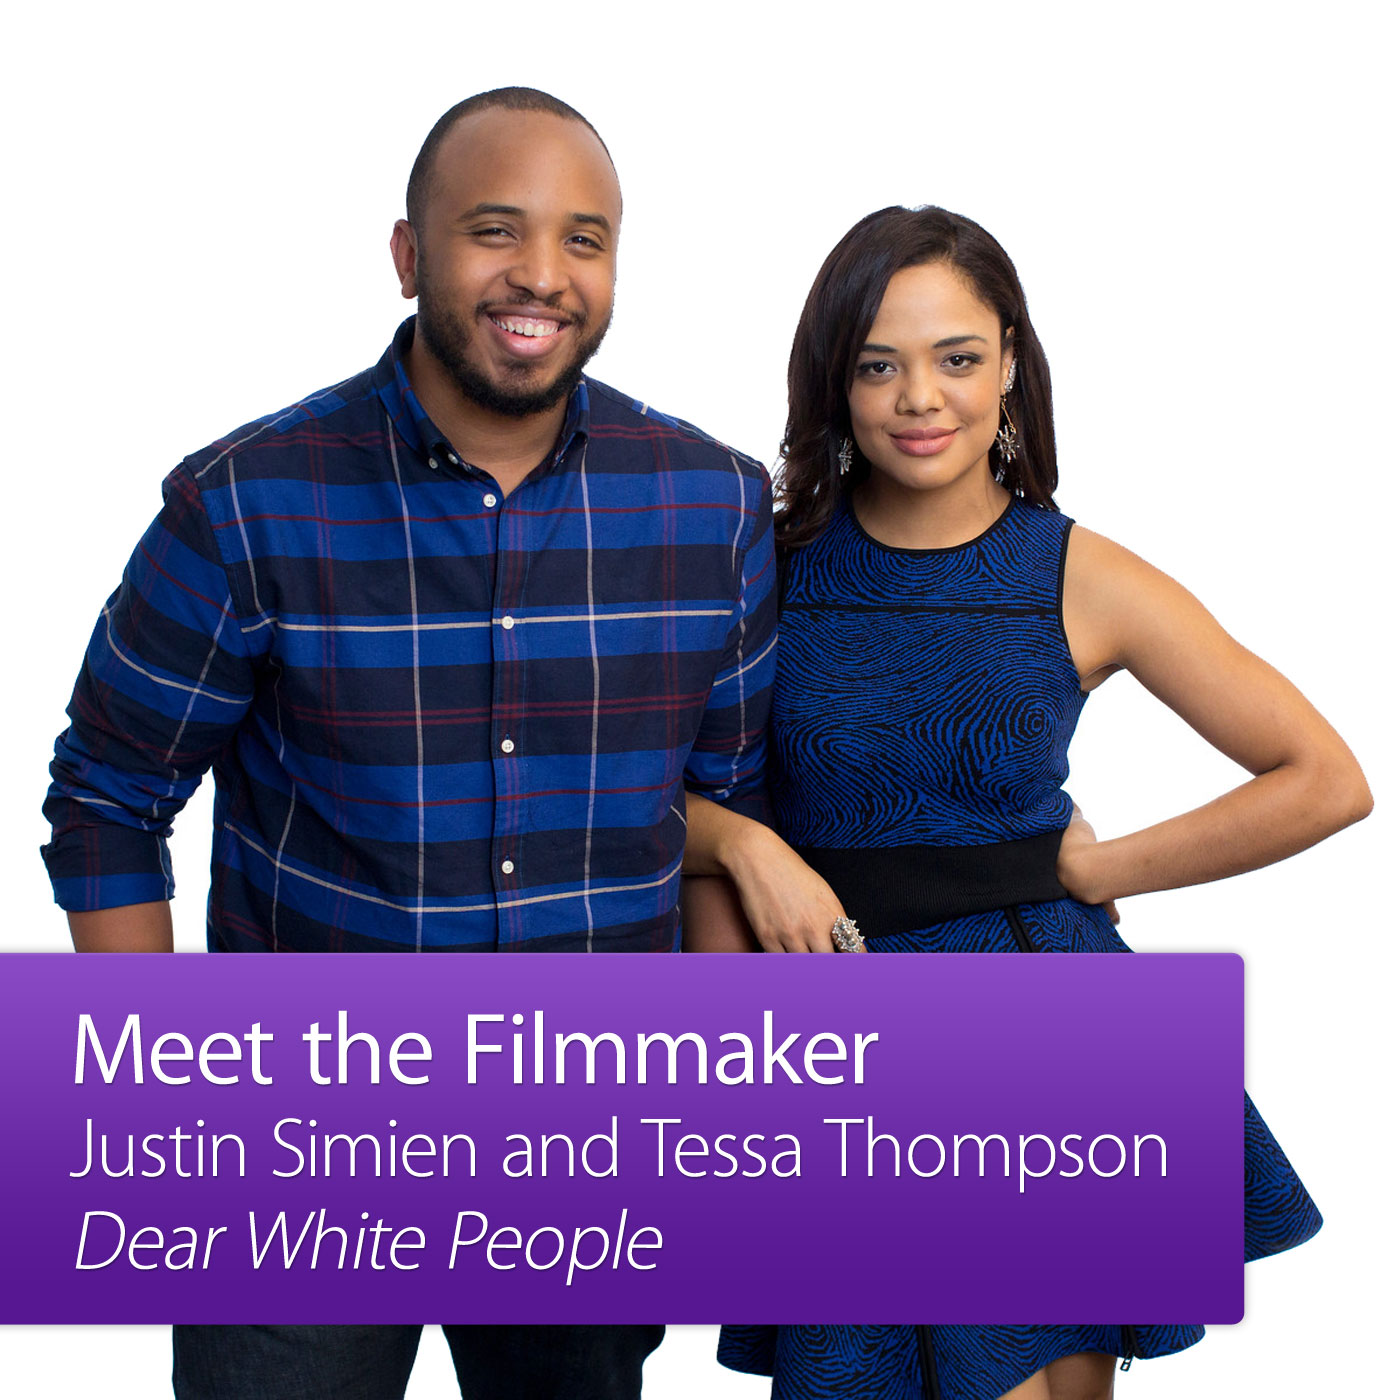 Justin Simien and Tessa Thompson: Meet the Filmmaker